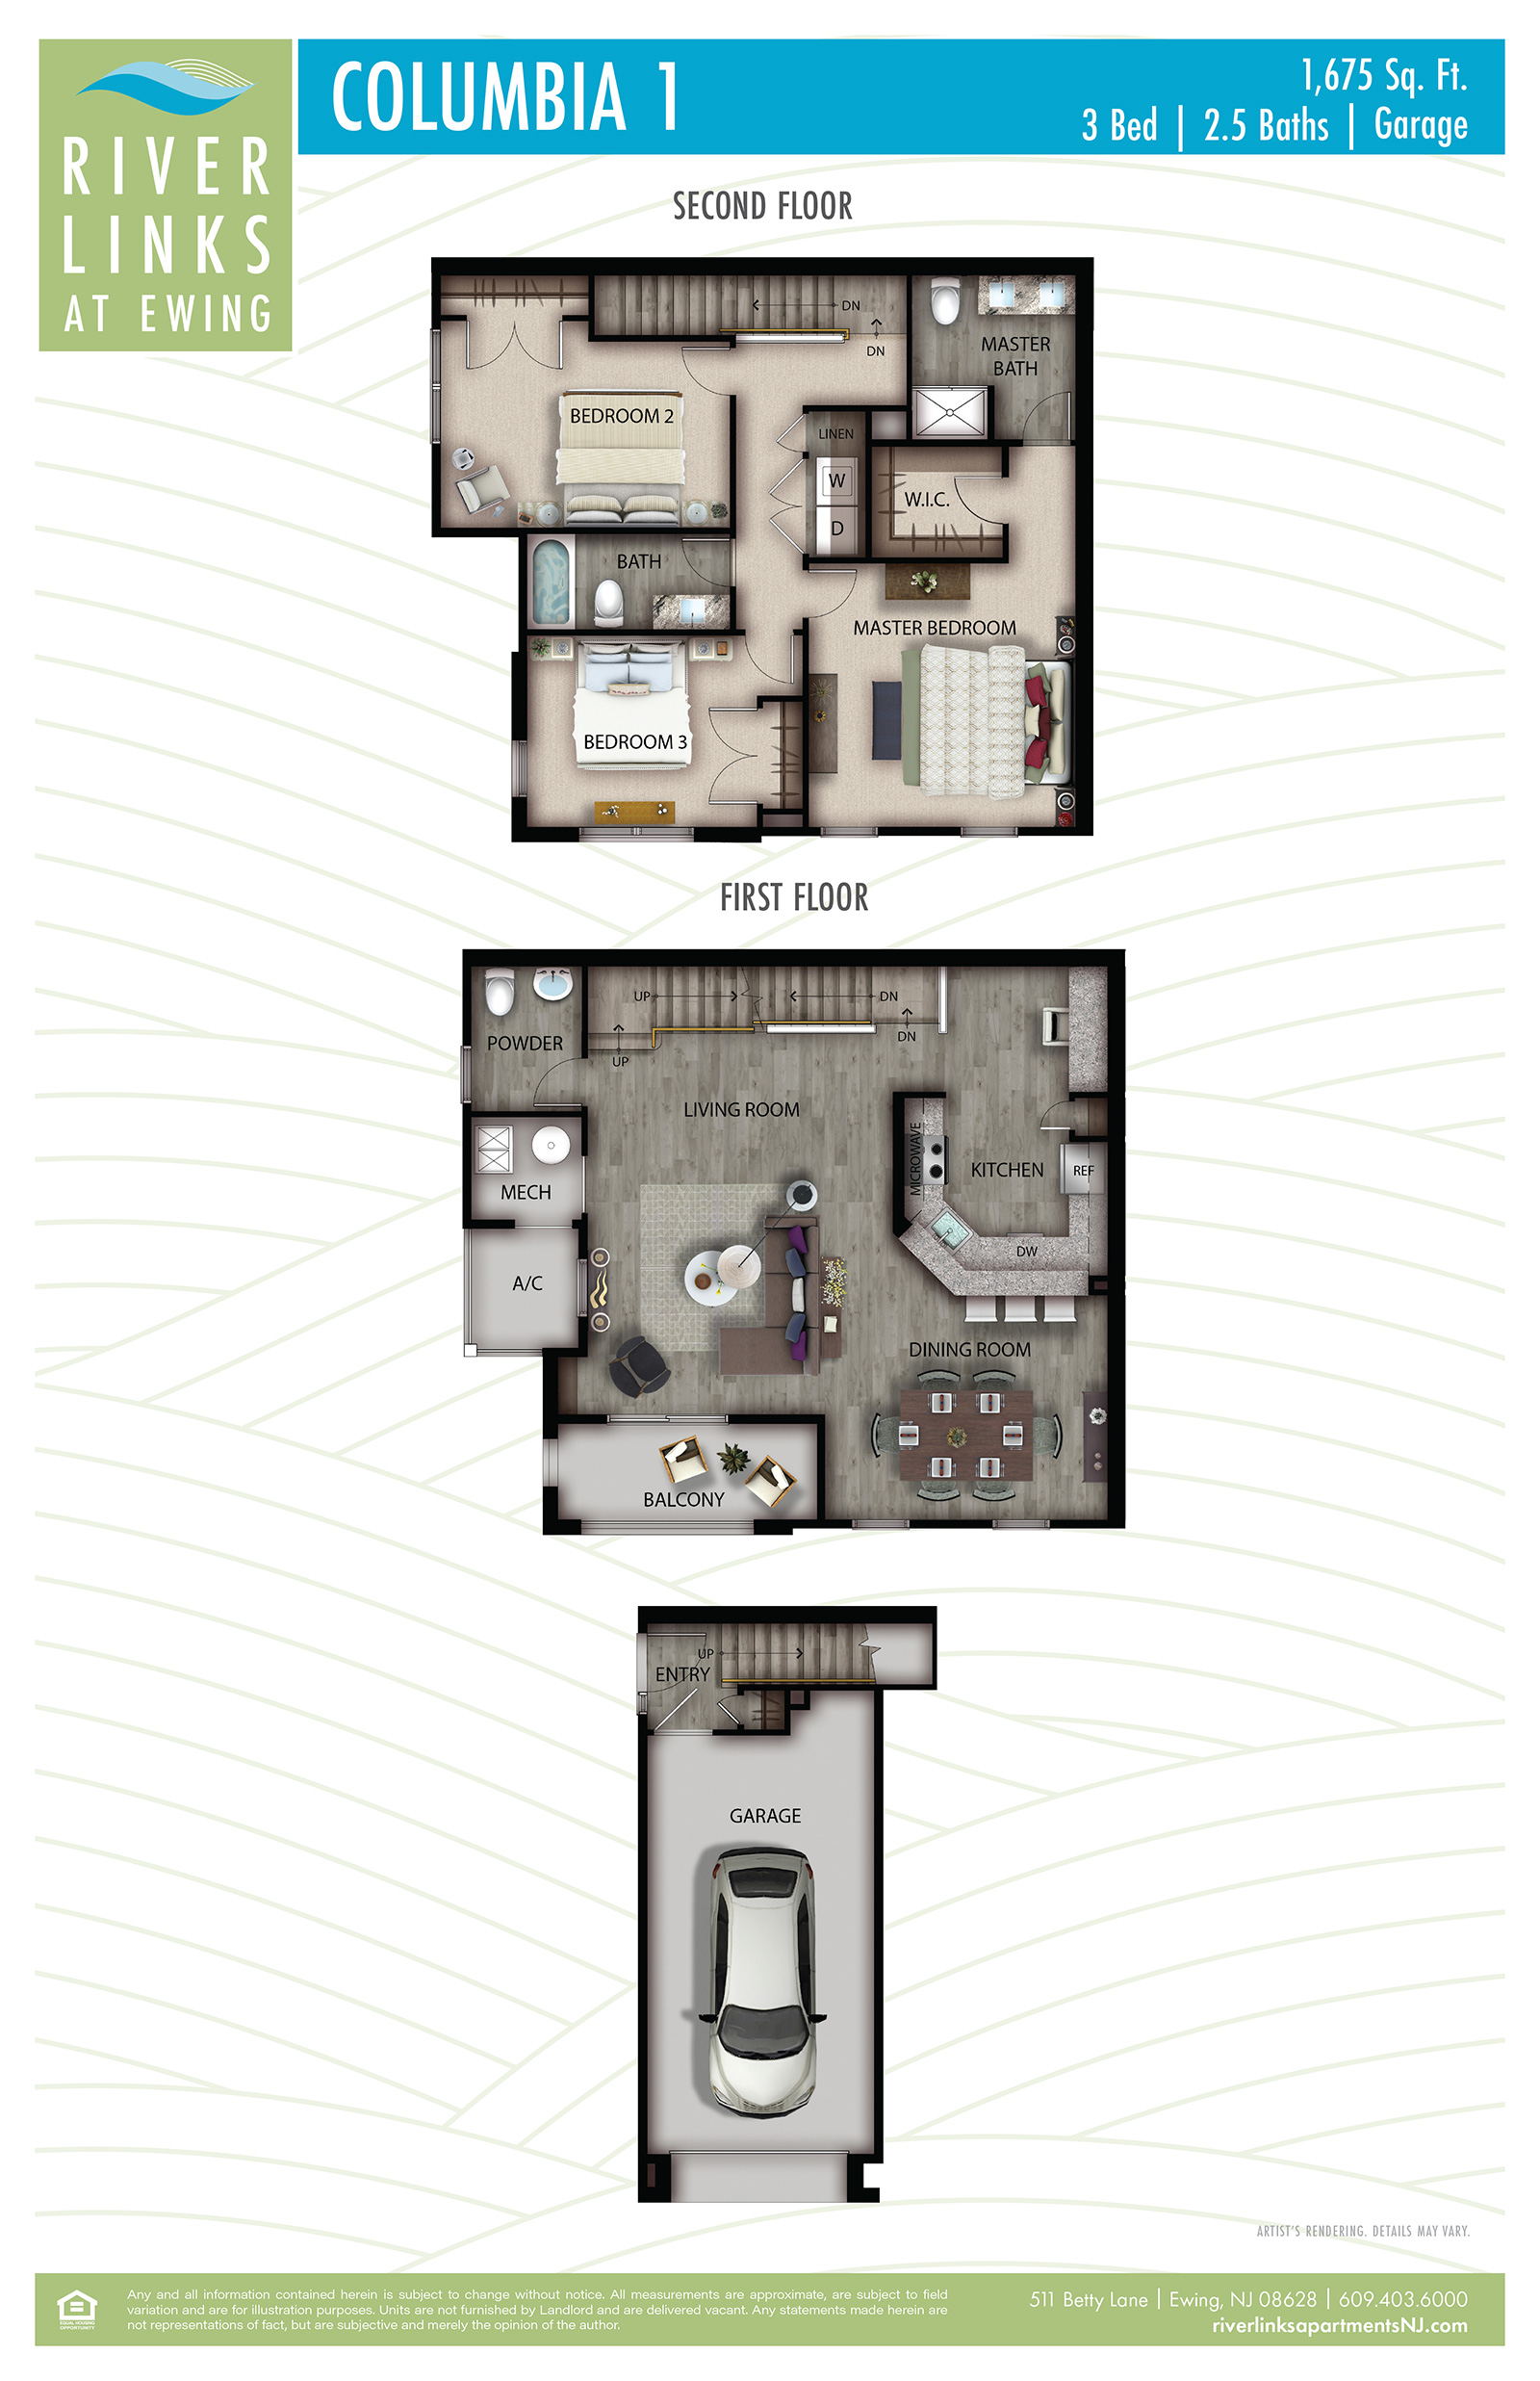 Columbia 1 - 3 Bedroom/2.5 Bath/Garage